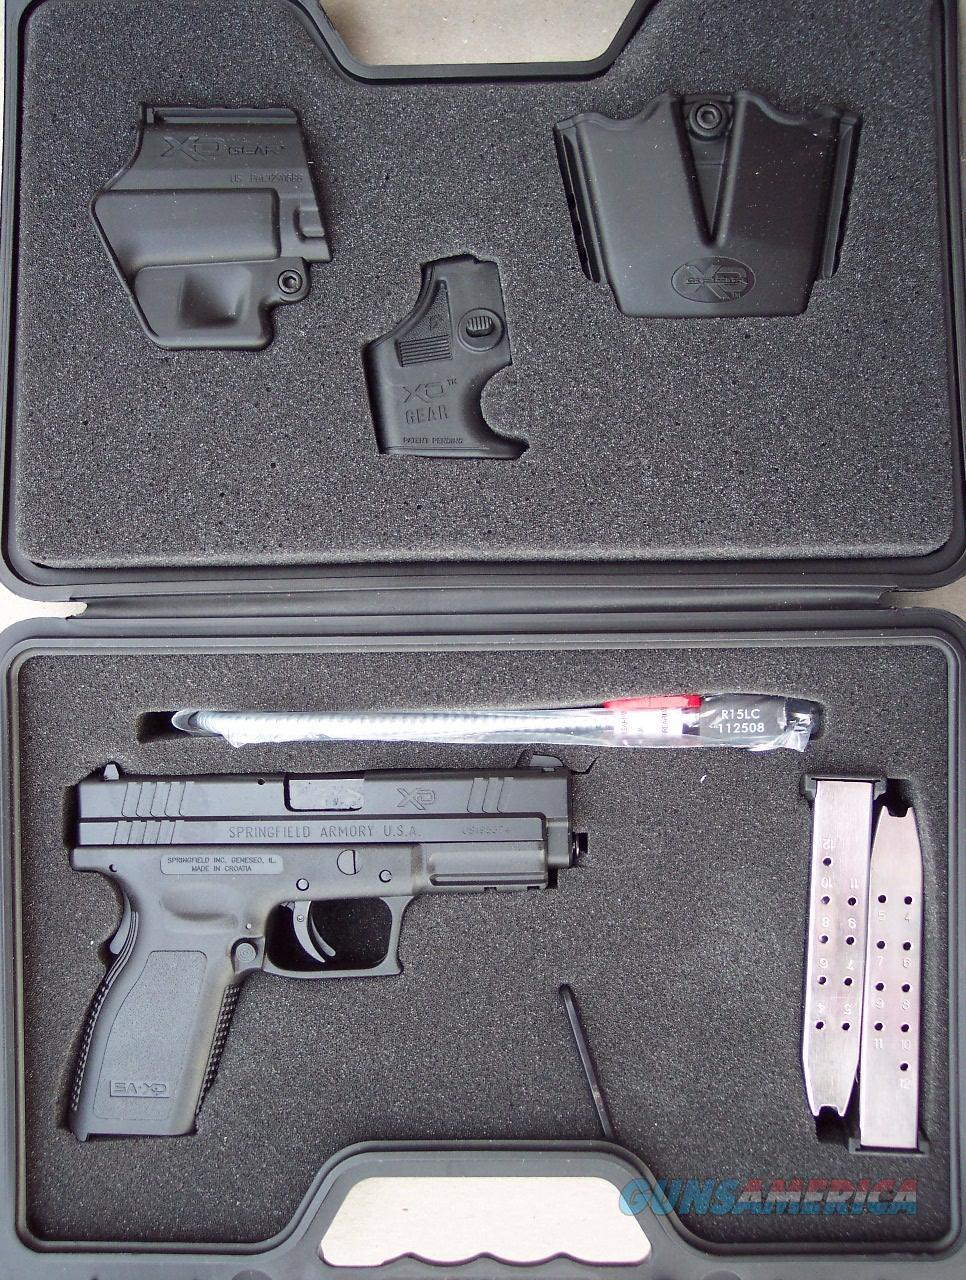 NIB Springfield XD-9, 9MM with Night Sights  Guns > Pistols > Springfield Armory Pistols > XD (eXtreme Duty)